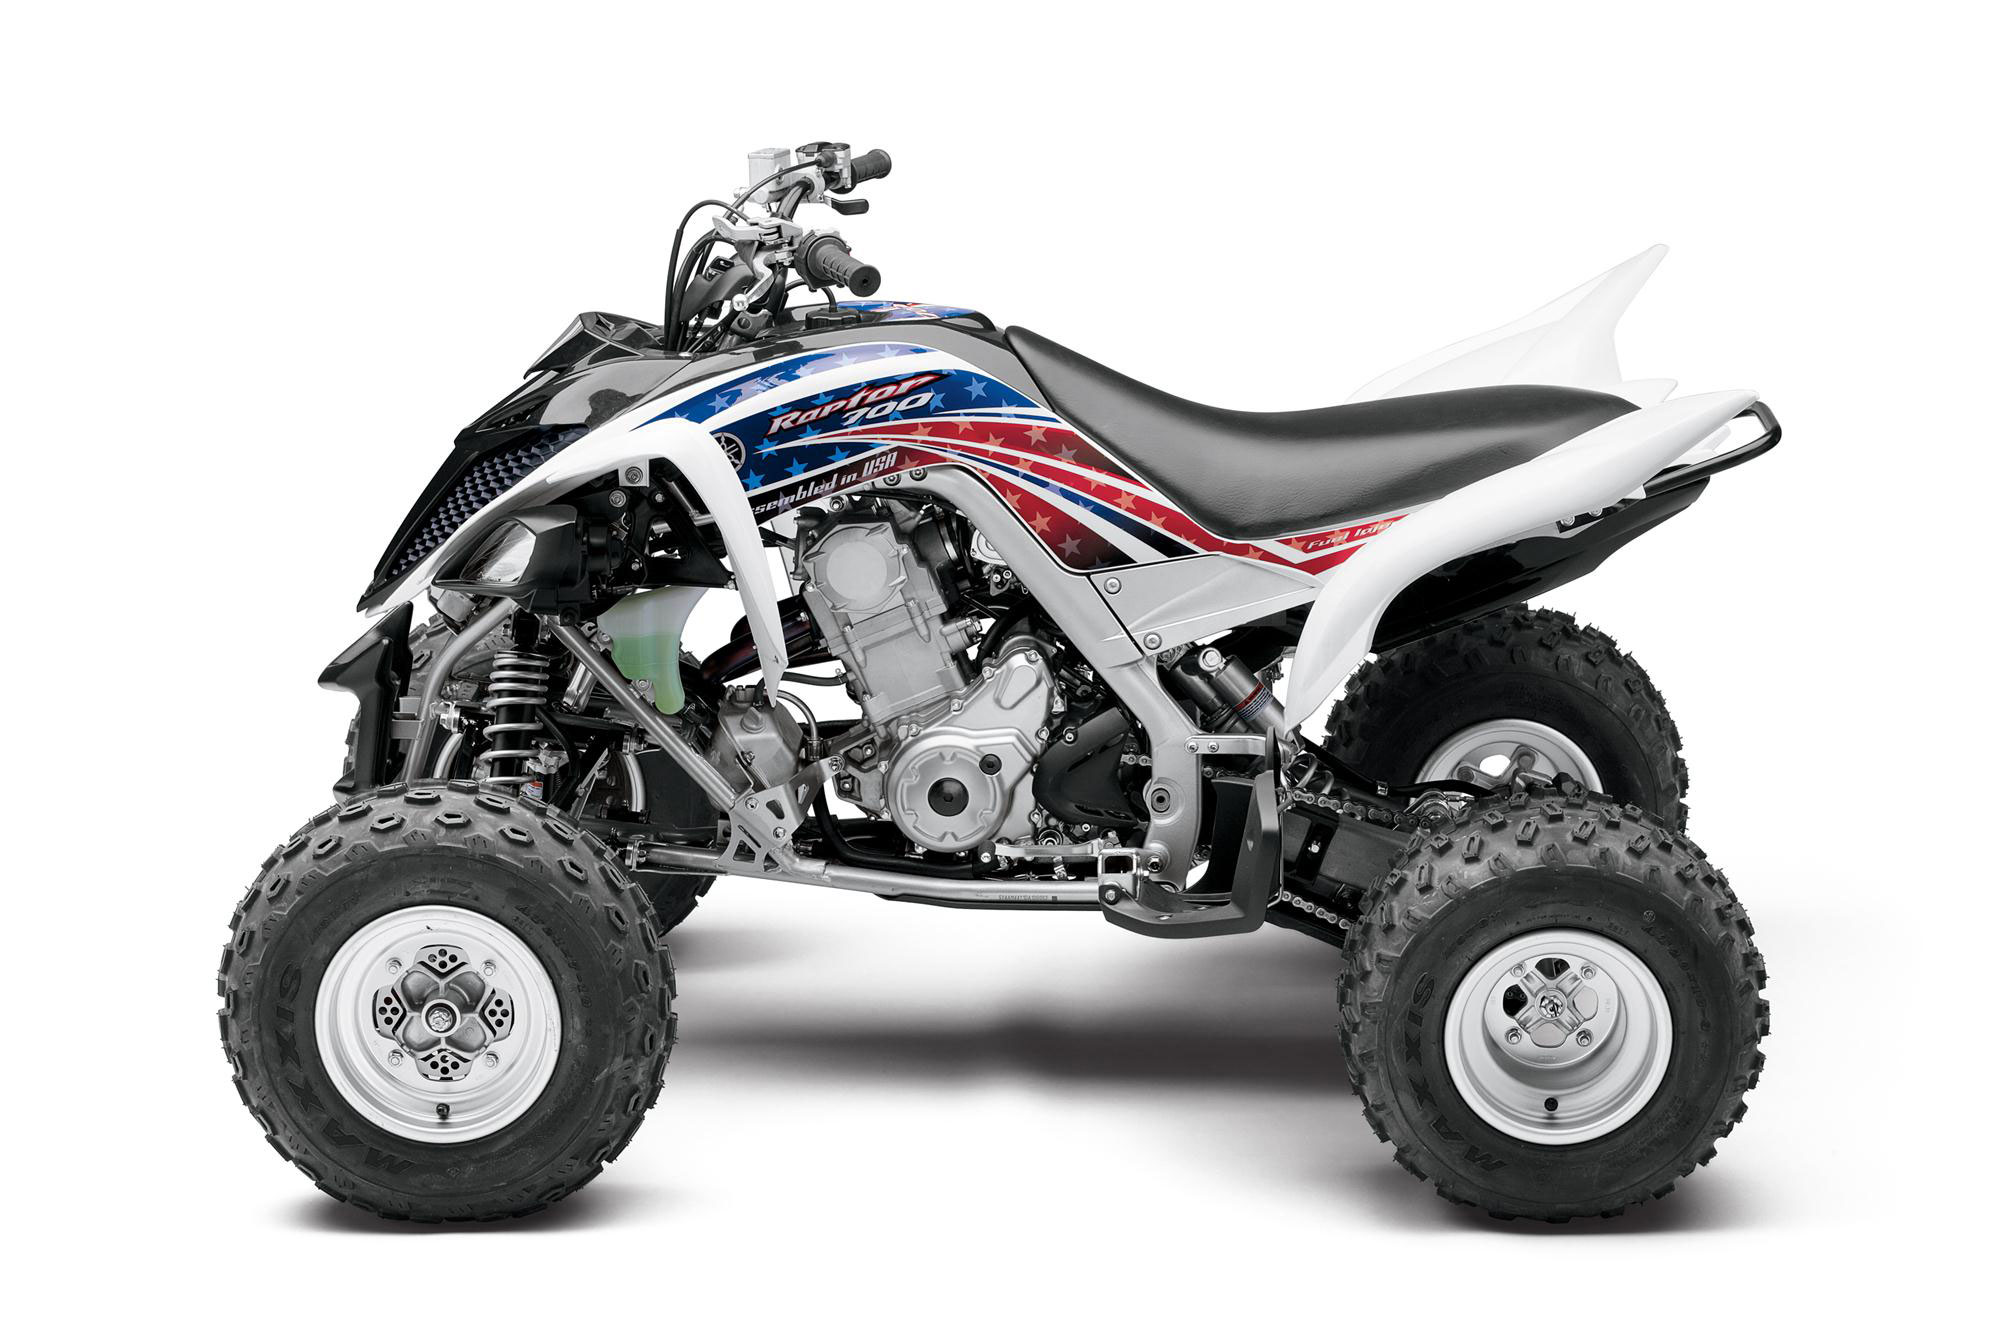 2013 yamaha raptor 700 review. Black Bedroom Furniture Sets. Home Design Ideas